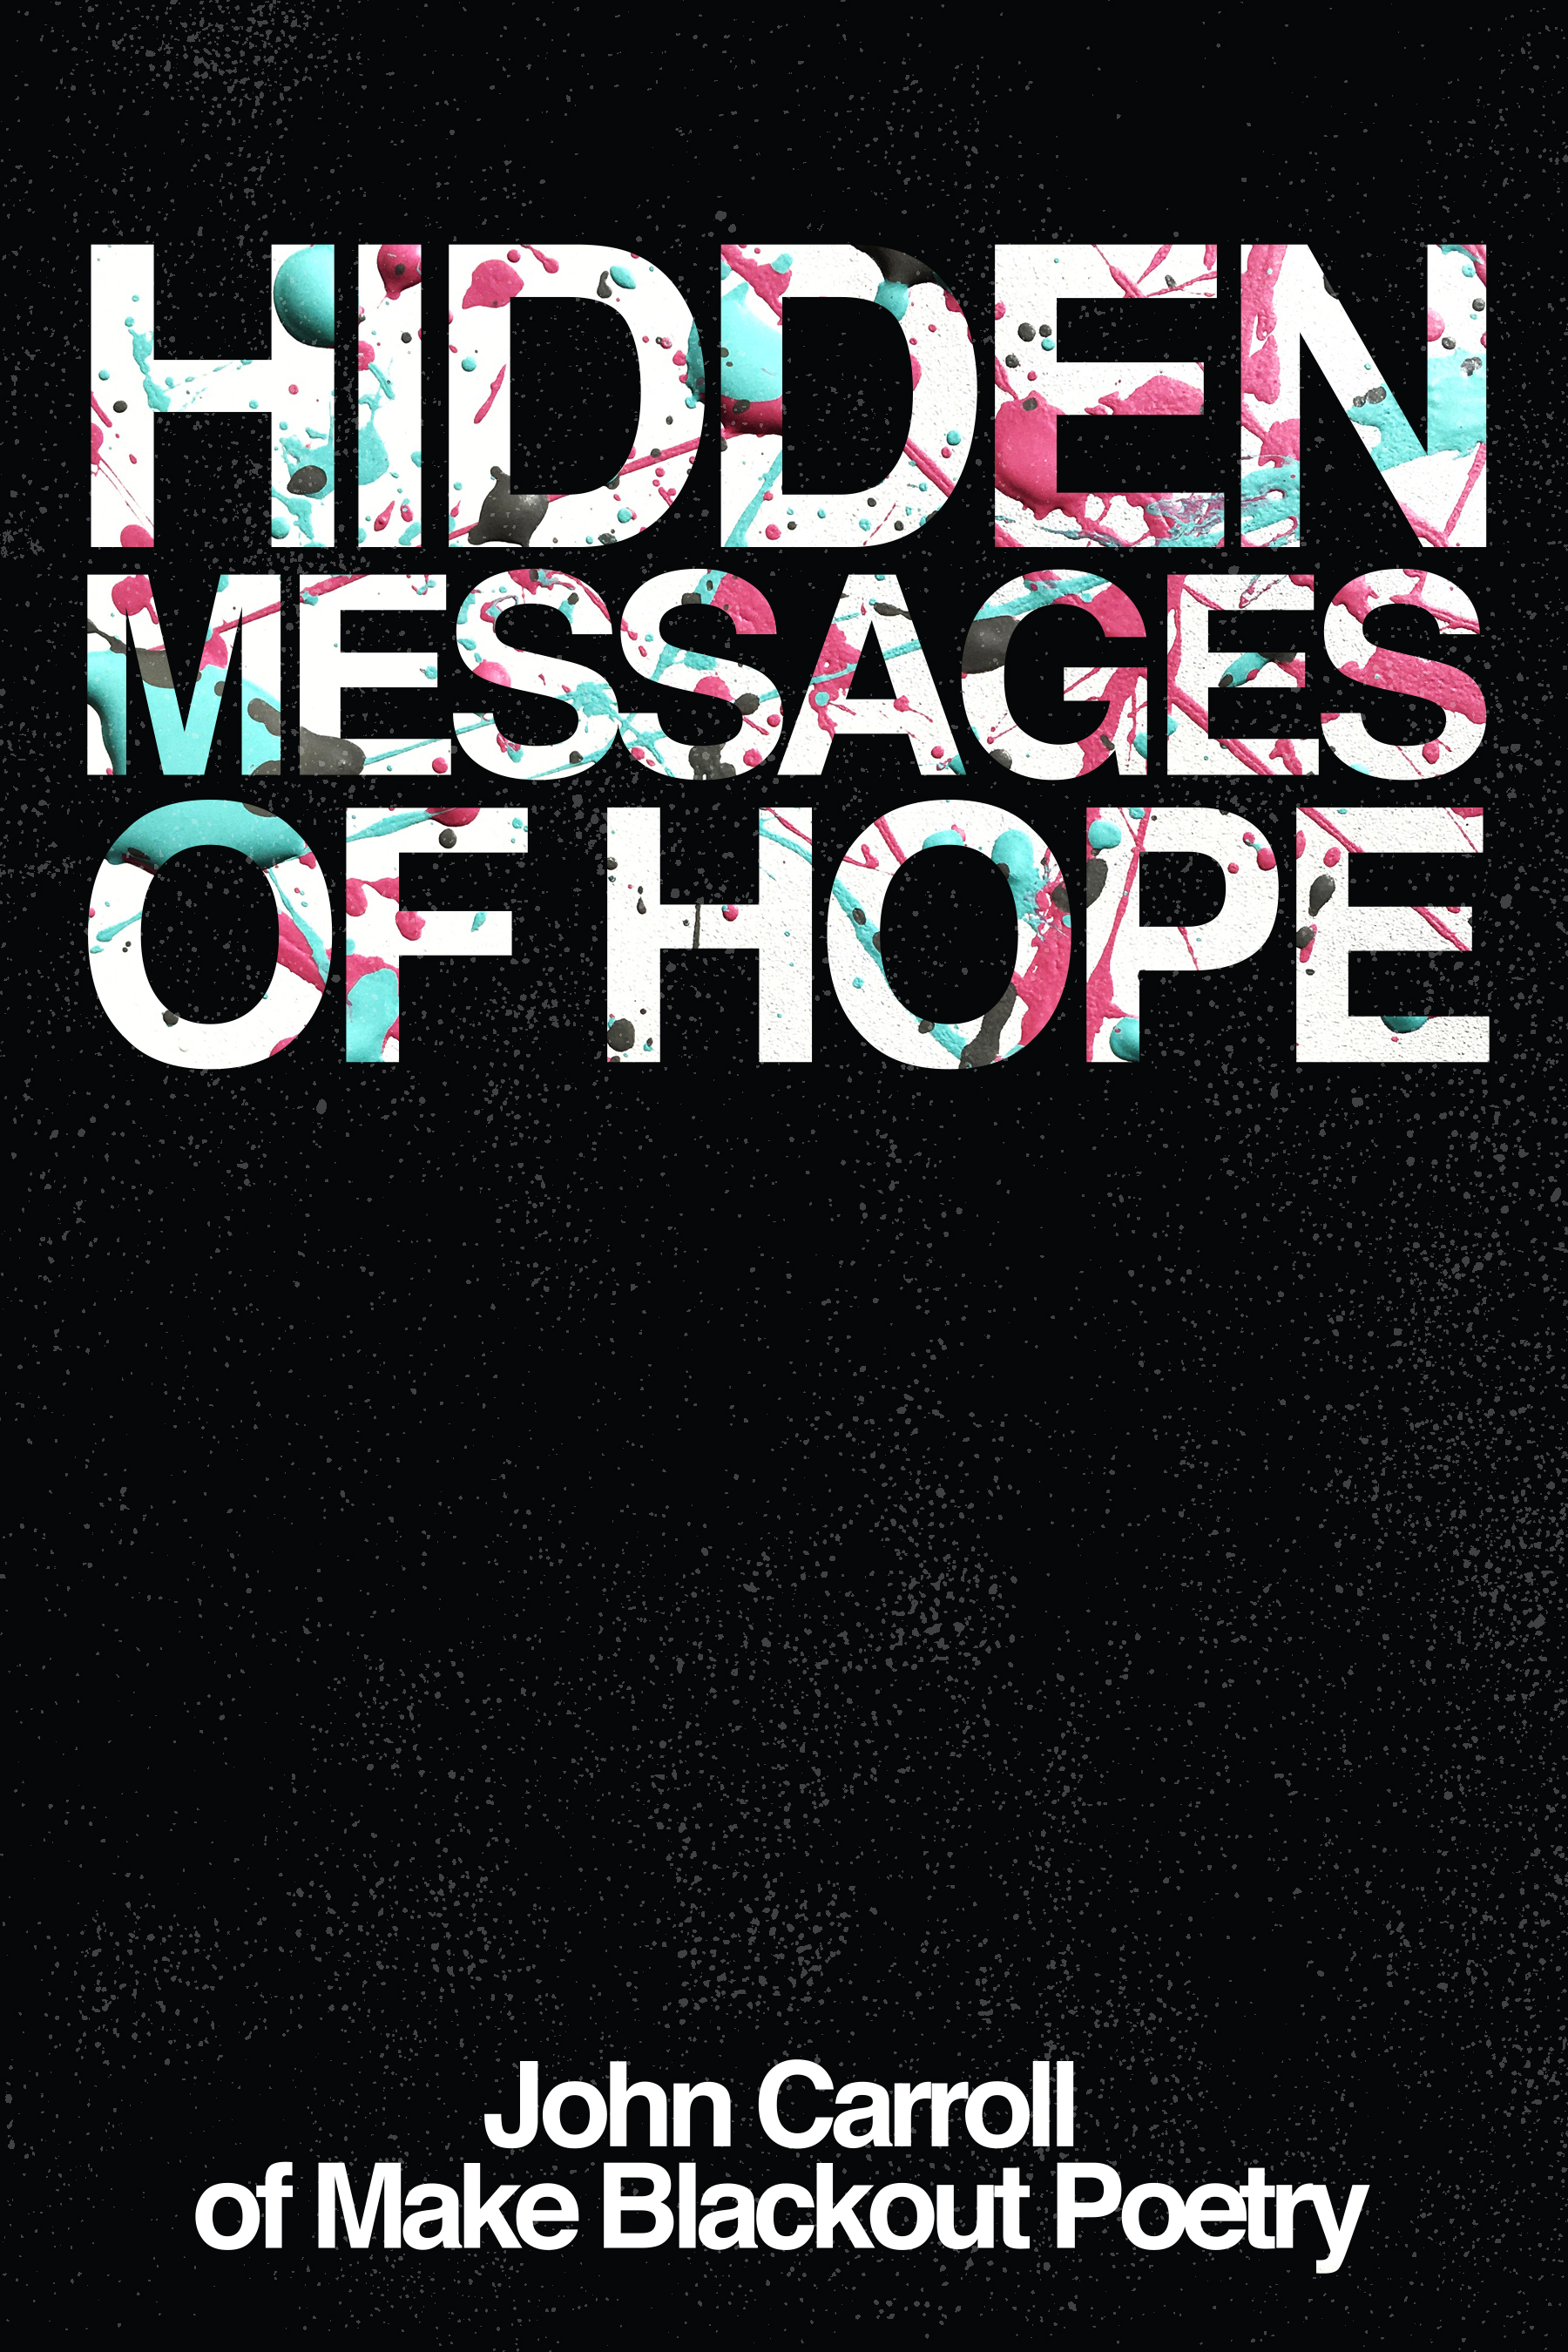 MBP_HiddenMeassageHOpe_Cover.jpg